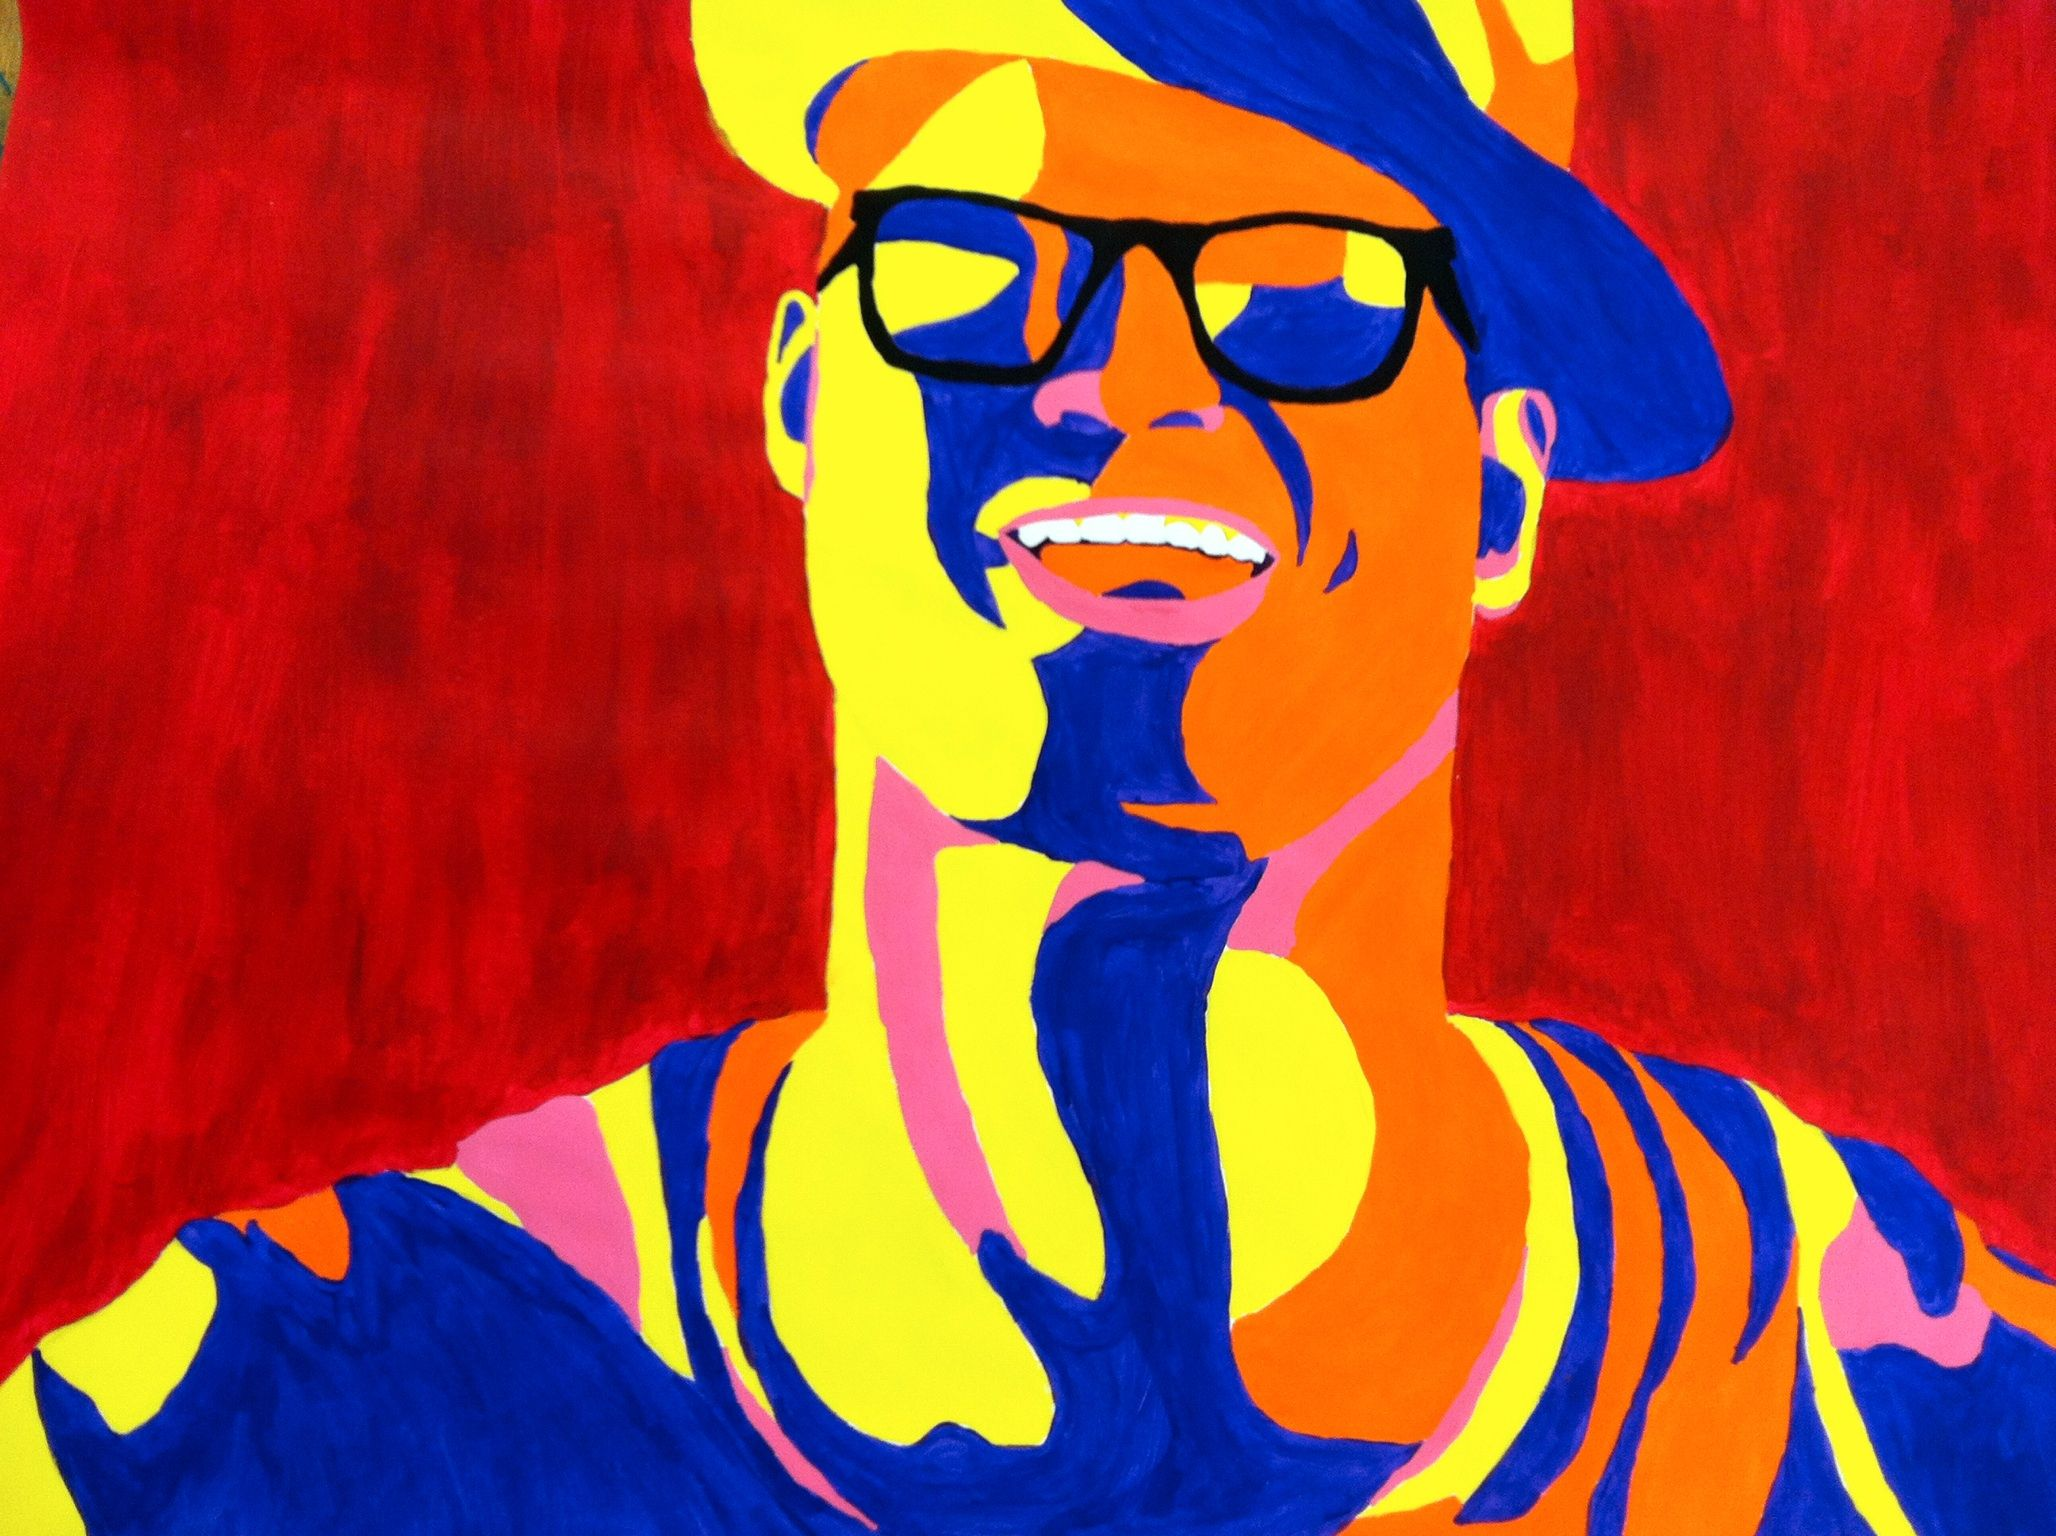 Serigrafias Libra Painting Bruno Mars Pop Art I M Feelin Crafty Bruno Mars